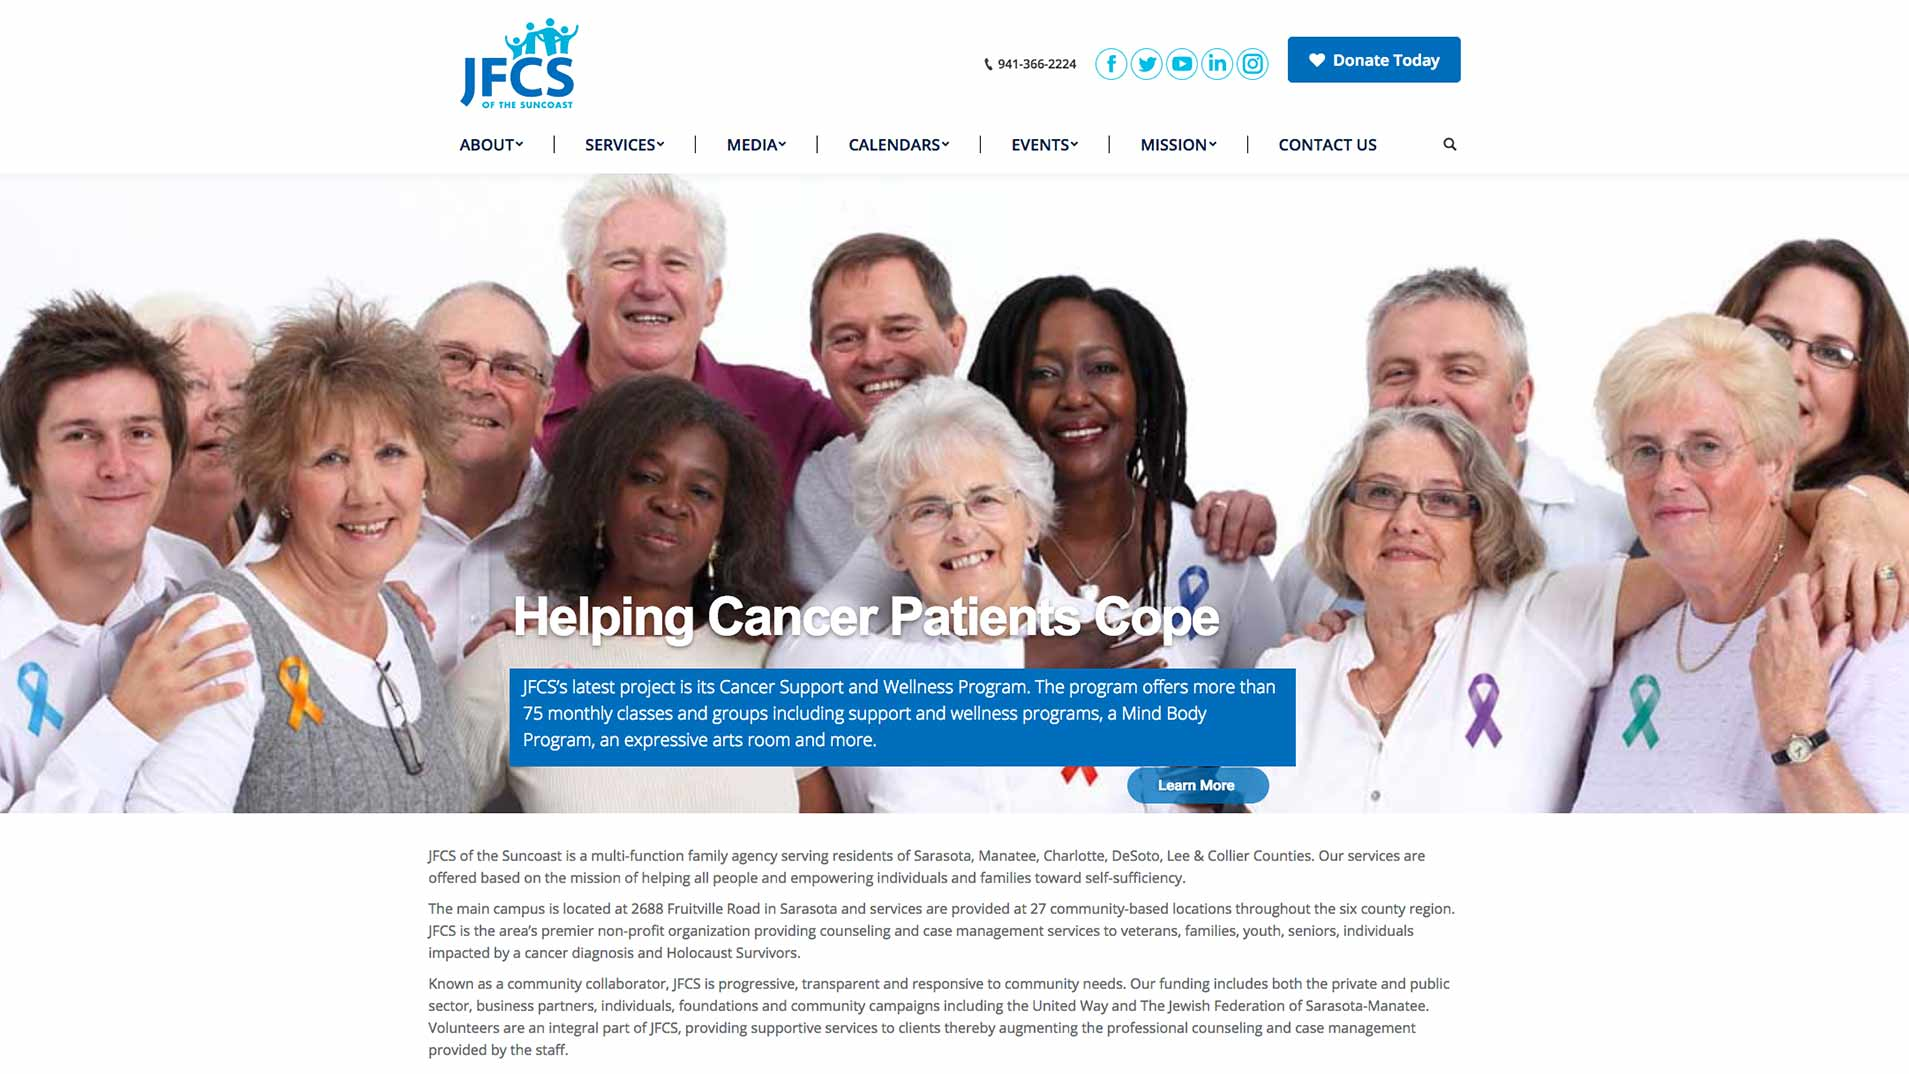 JFCS-cares.org - JFCS of the Suncoast